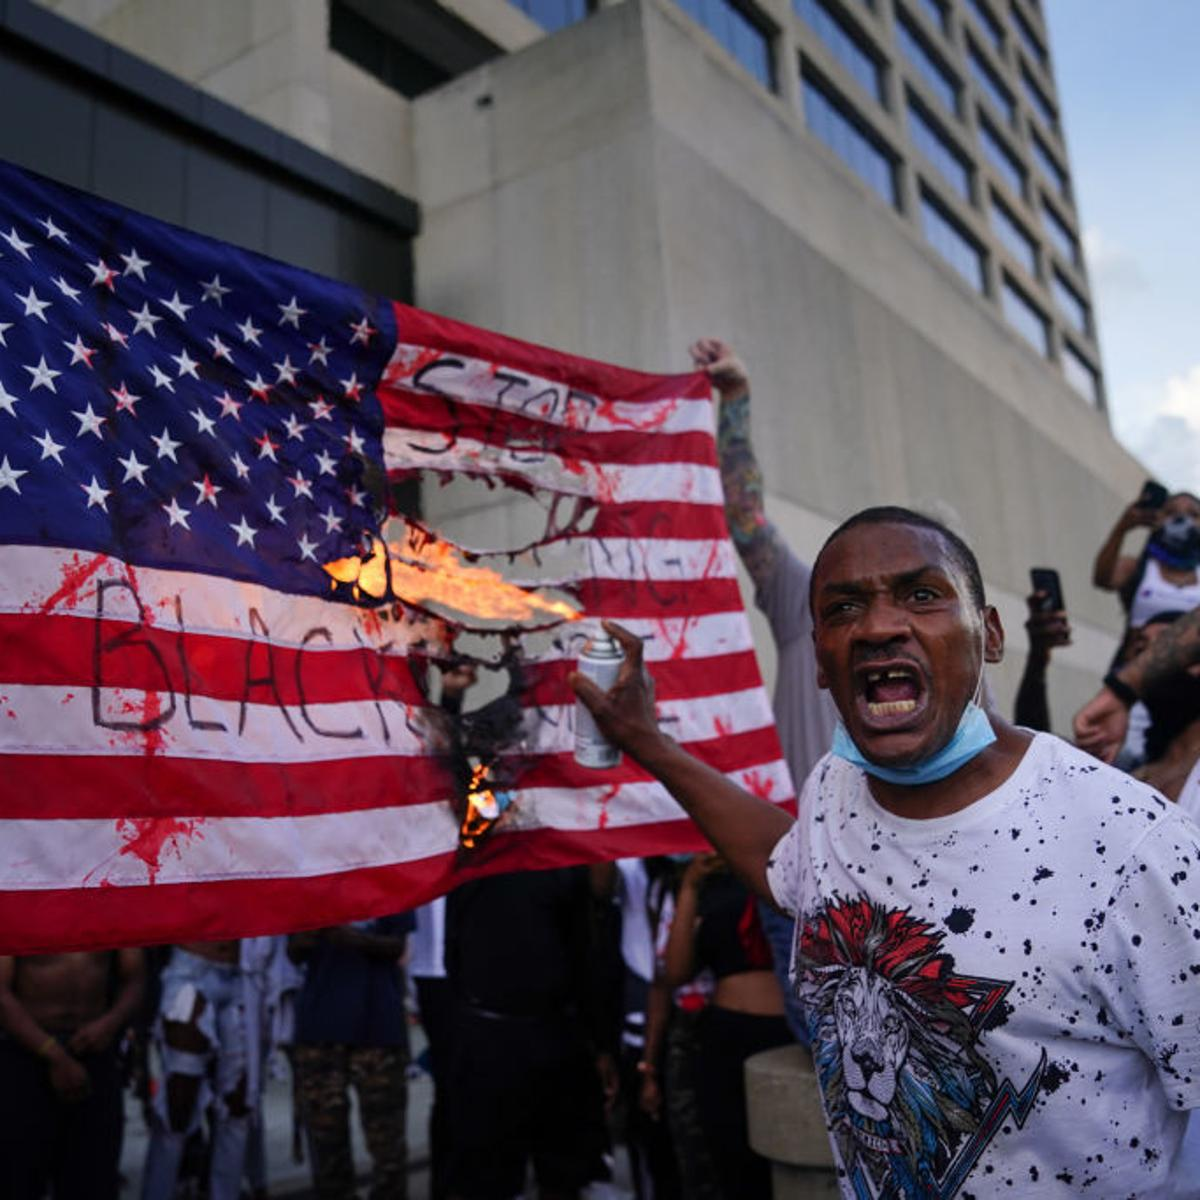 'If You Keep Murdering Black People, The City Will Burn': Why No One Has a Right to Criticize Black Protesters |The Pan-African Alliance